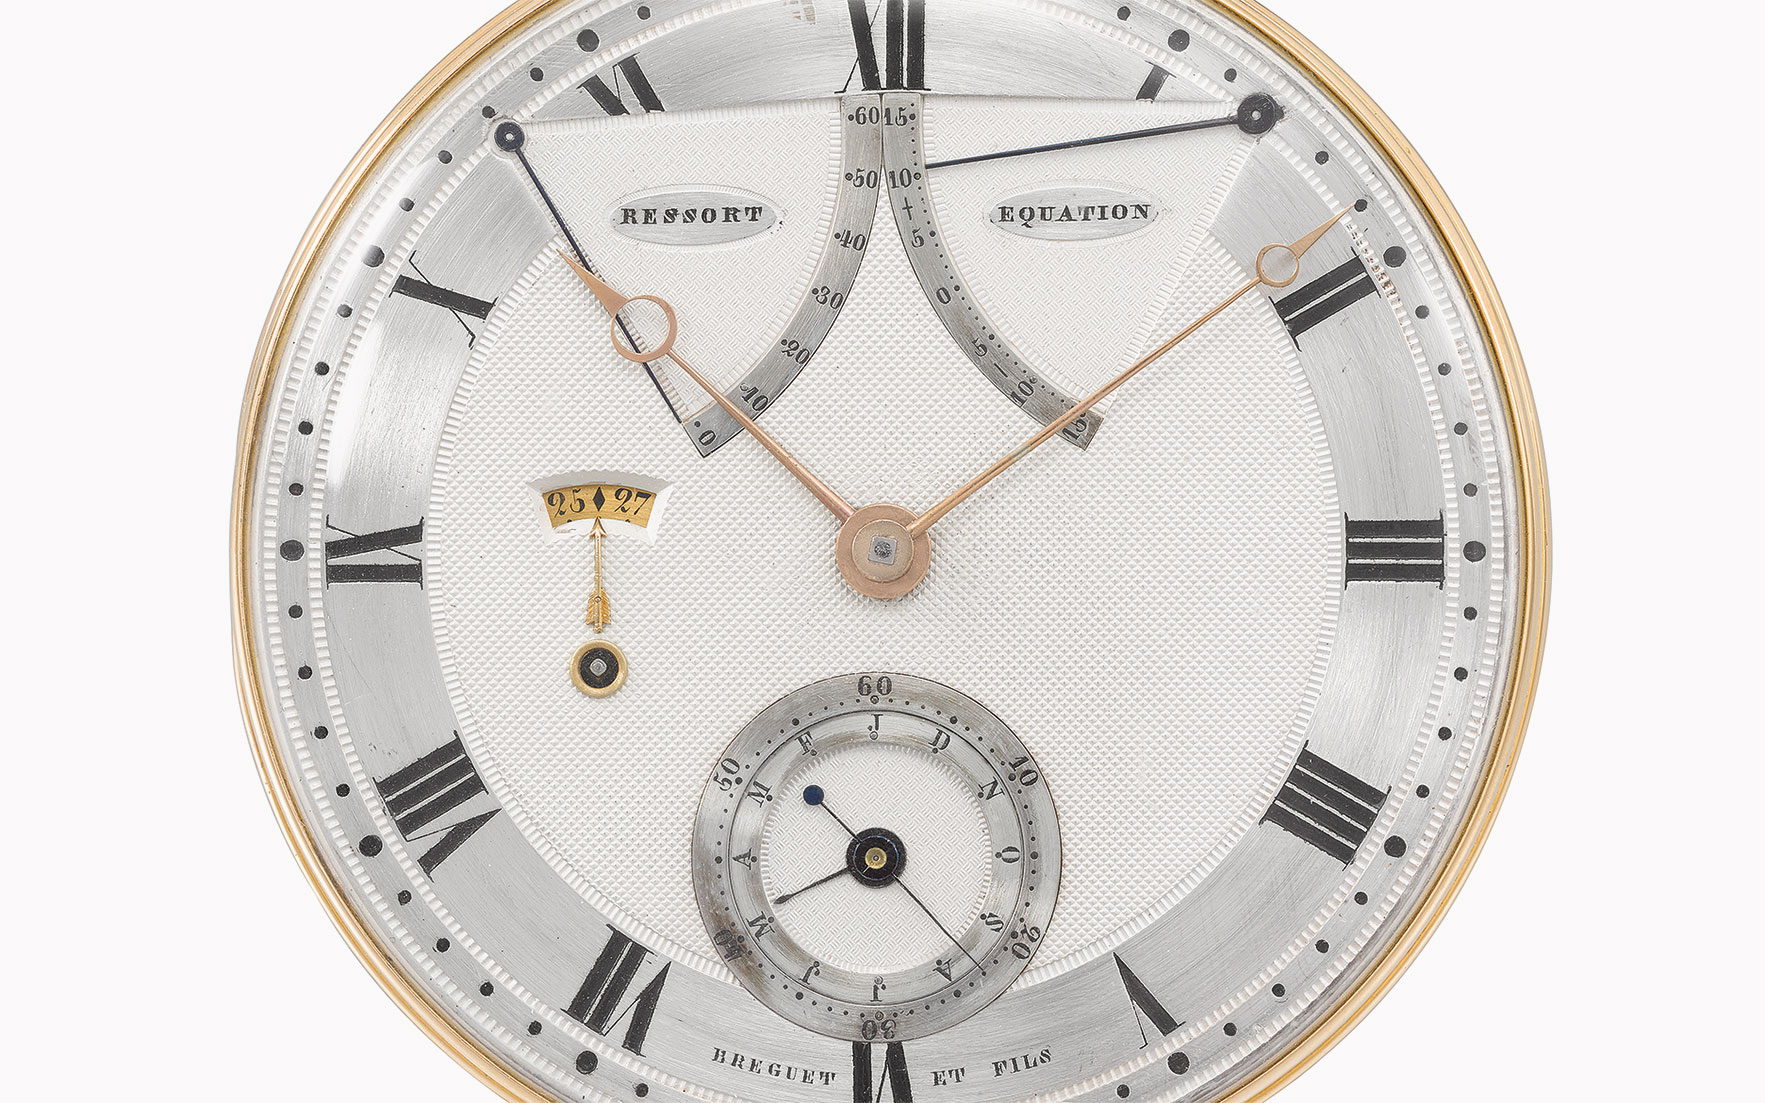 Watch No. 217 A Breguet masterpiece